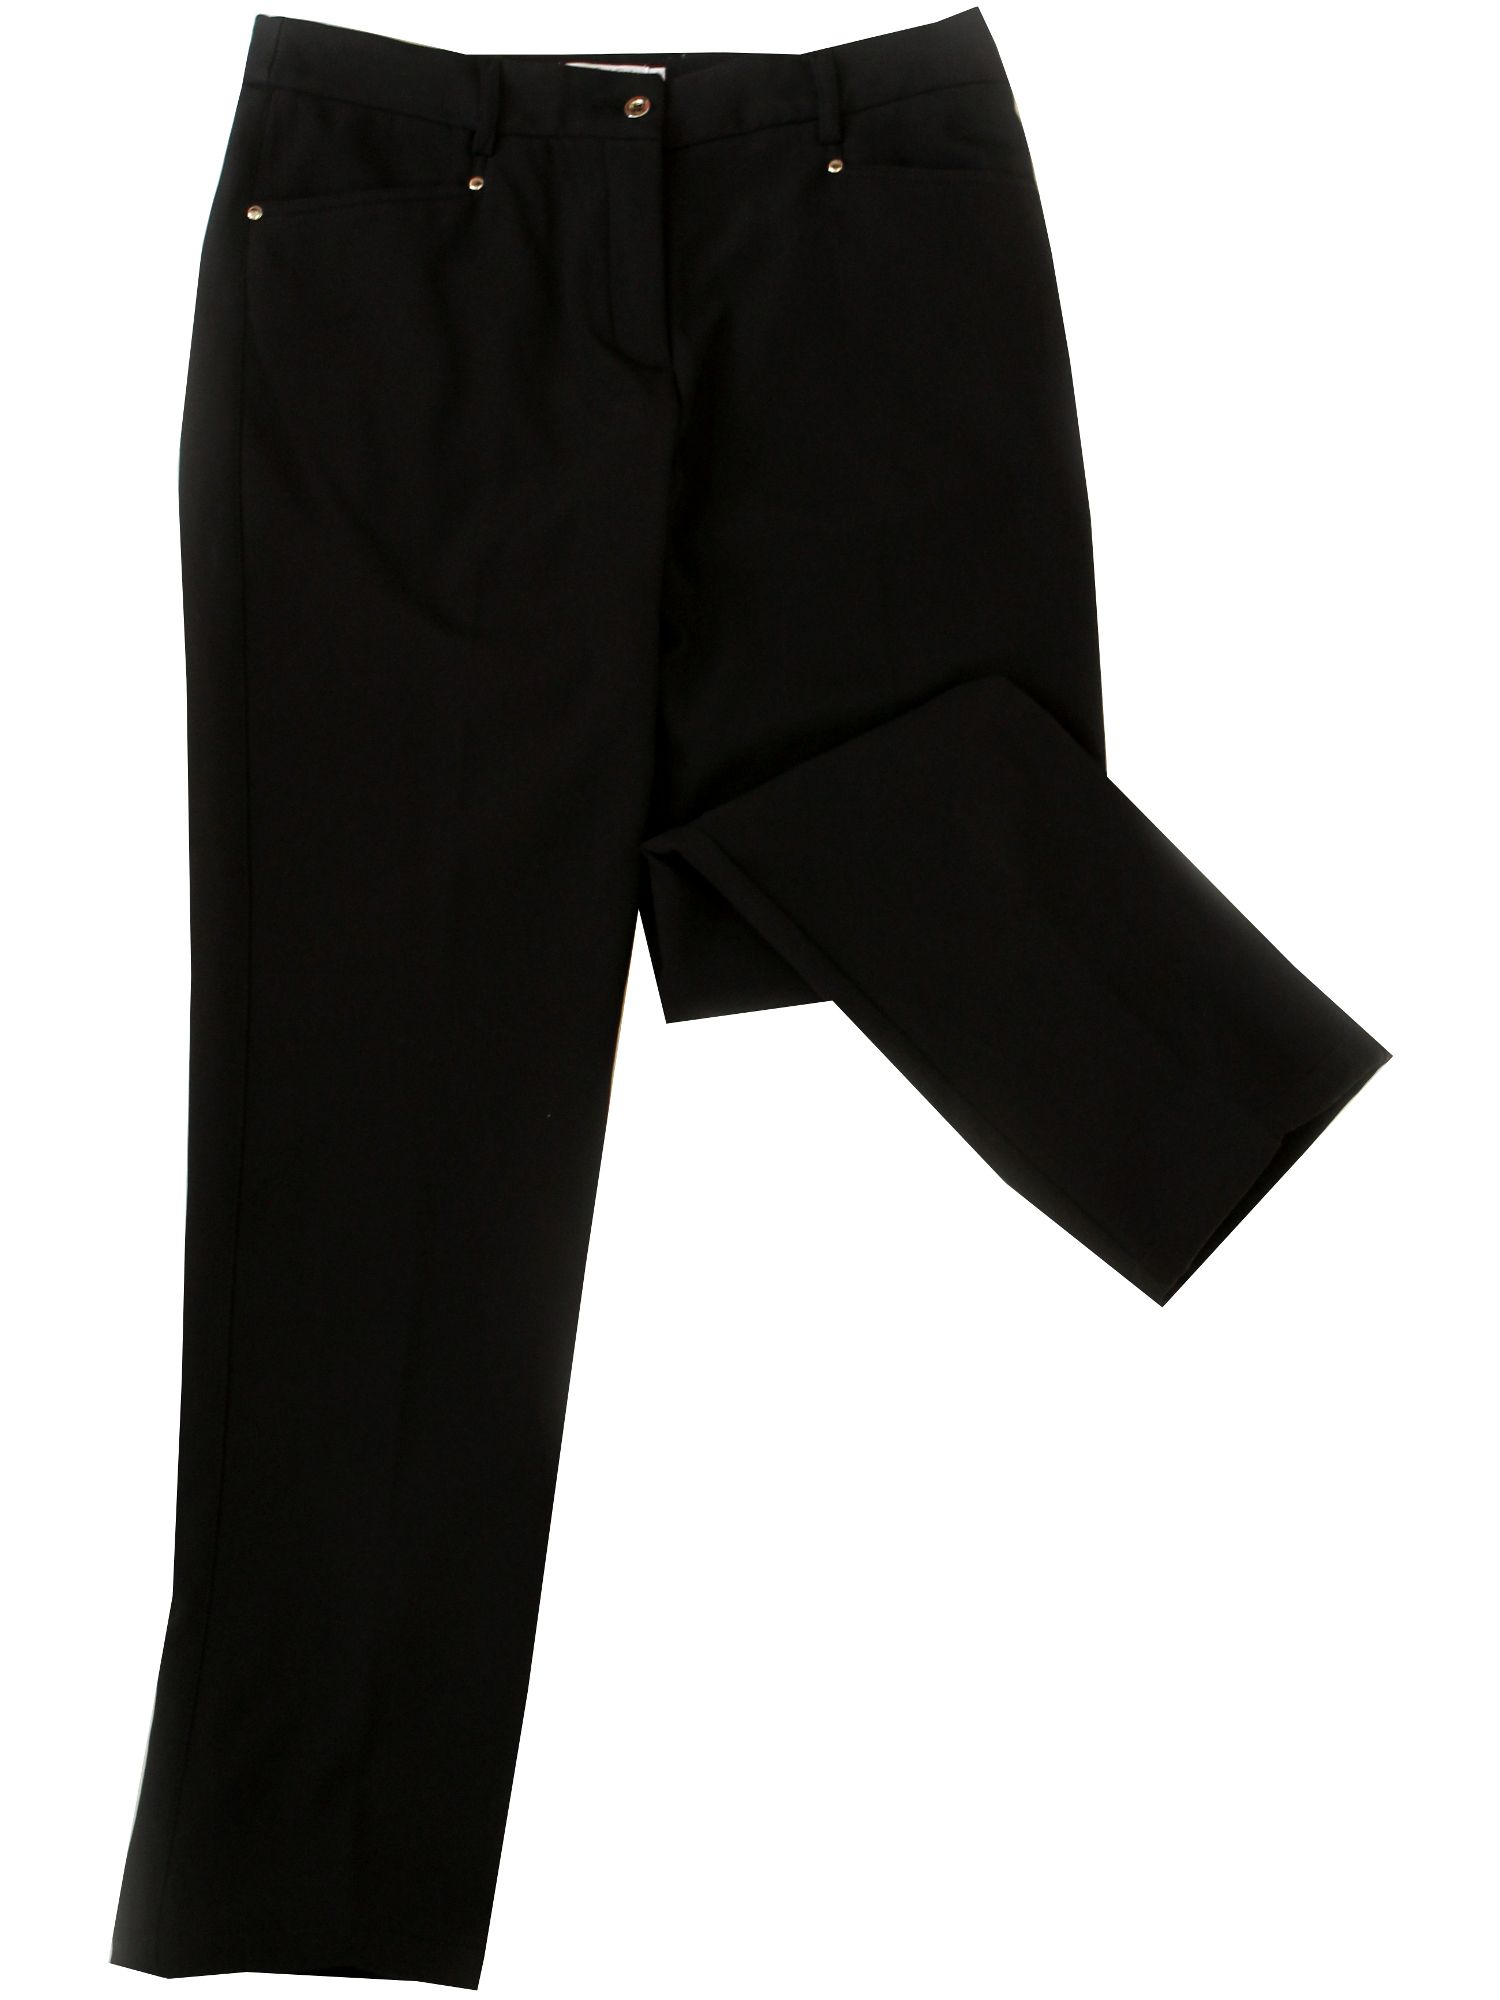 Swing Out Sister Swing Out Sister Guzzi Softshell Trouser, Black